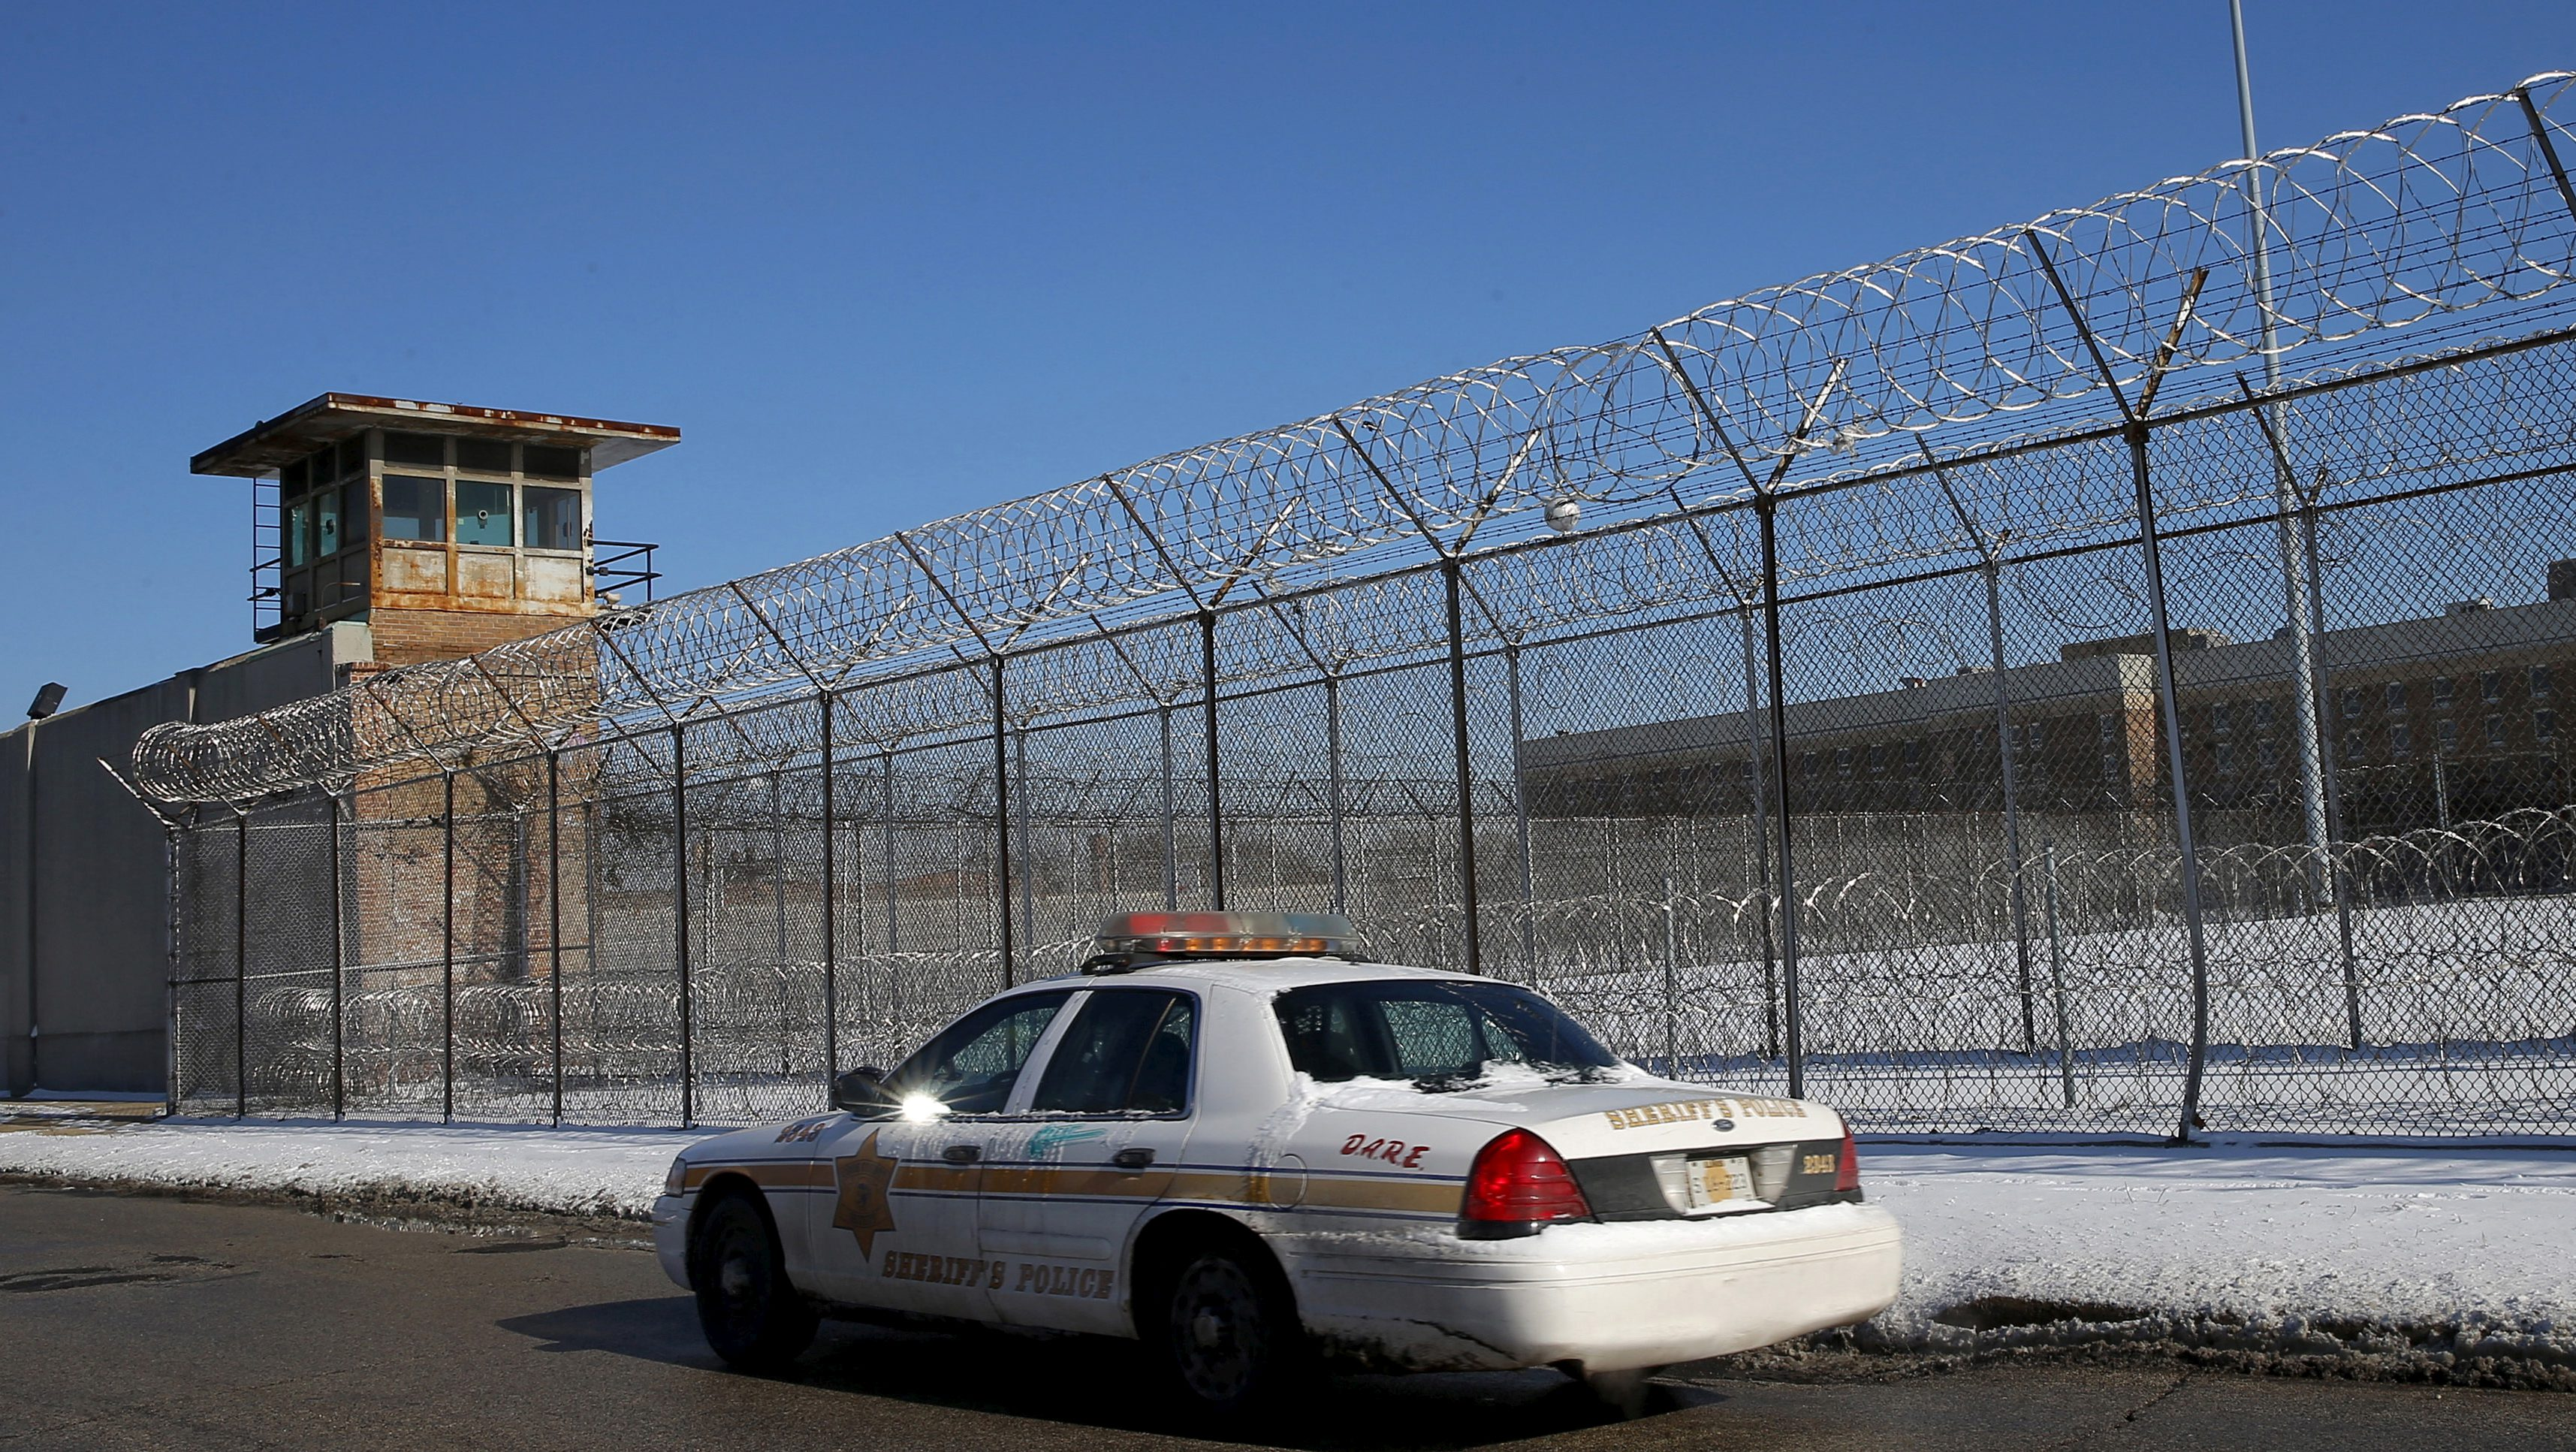 FILE PHOTO: A Cook County Sheriff's police car patrols the exterior of the Cook County Jail in Chicago, Illinois, U.S. on January 12, 2016.   REUTERS/Jim Young/File Photo - RC1898EDB970